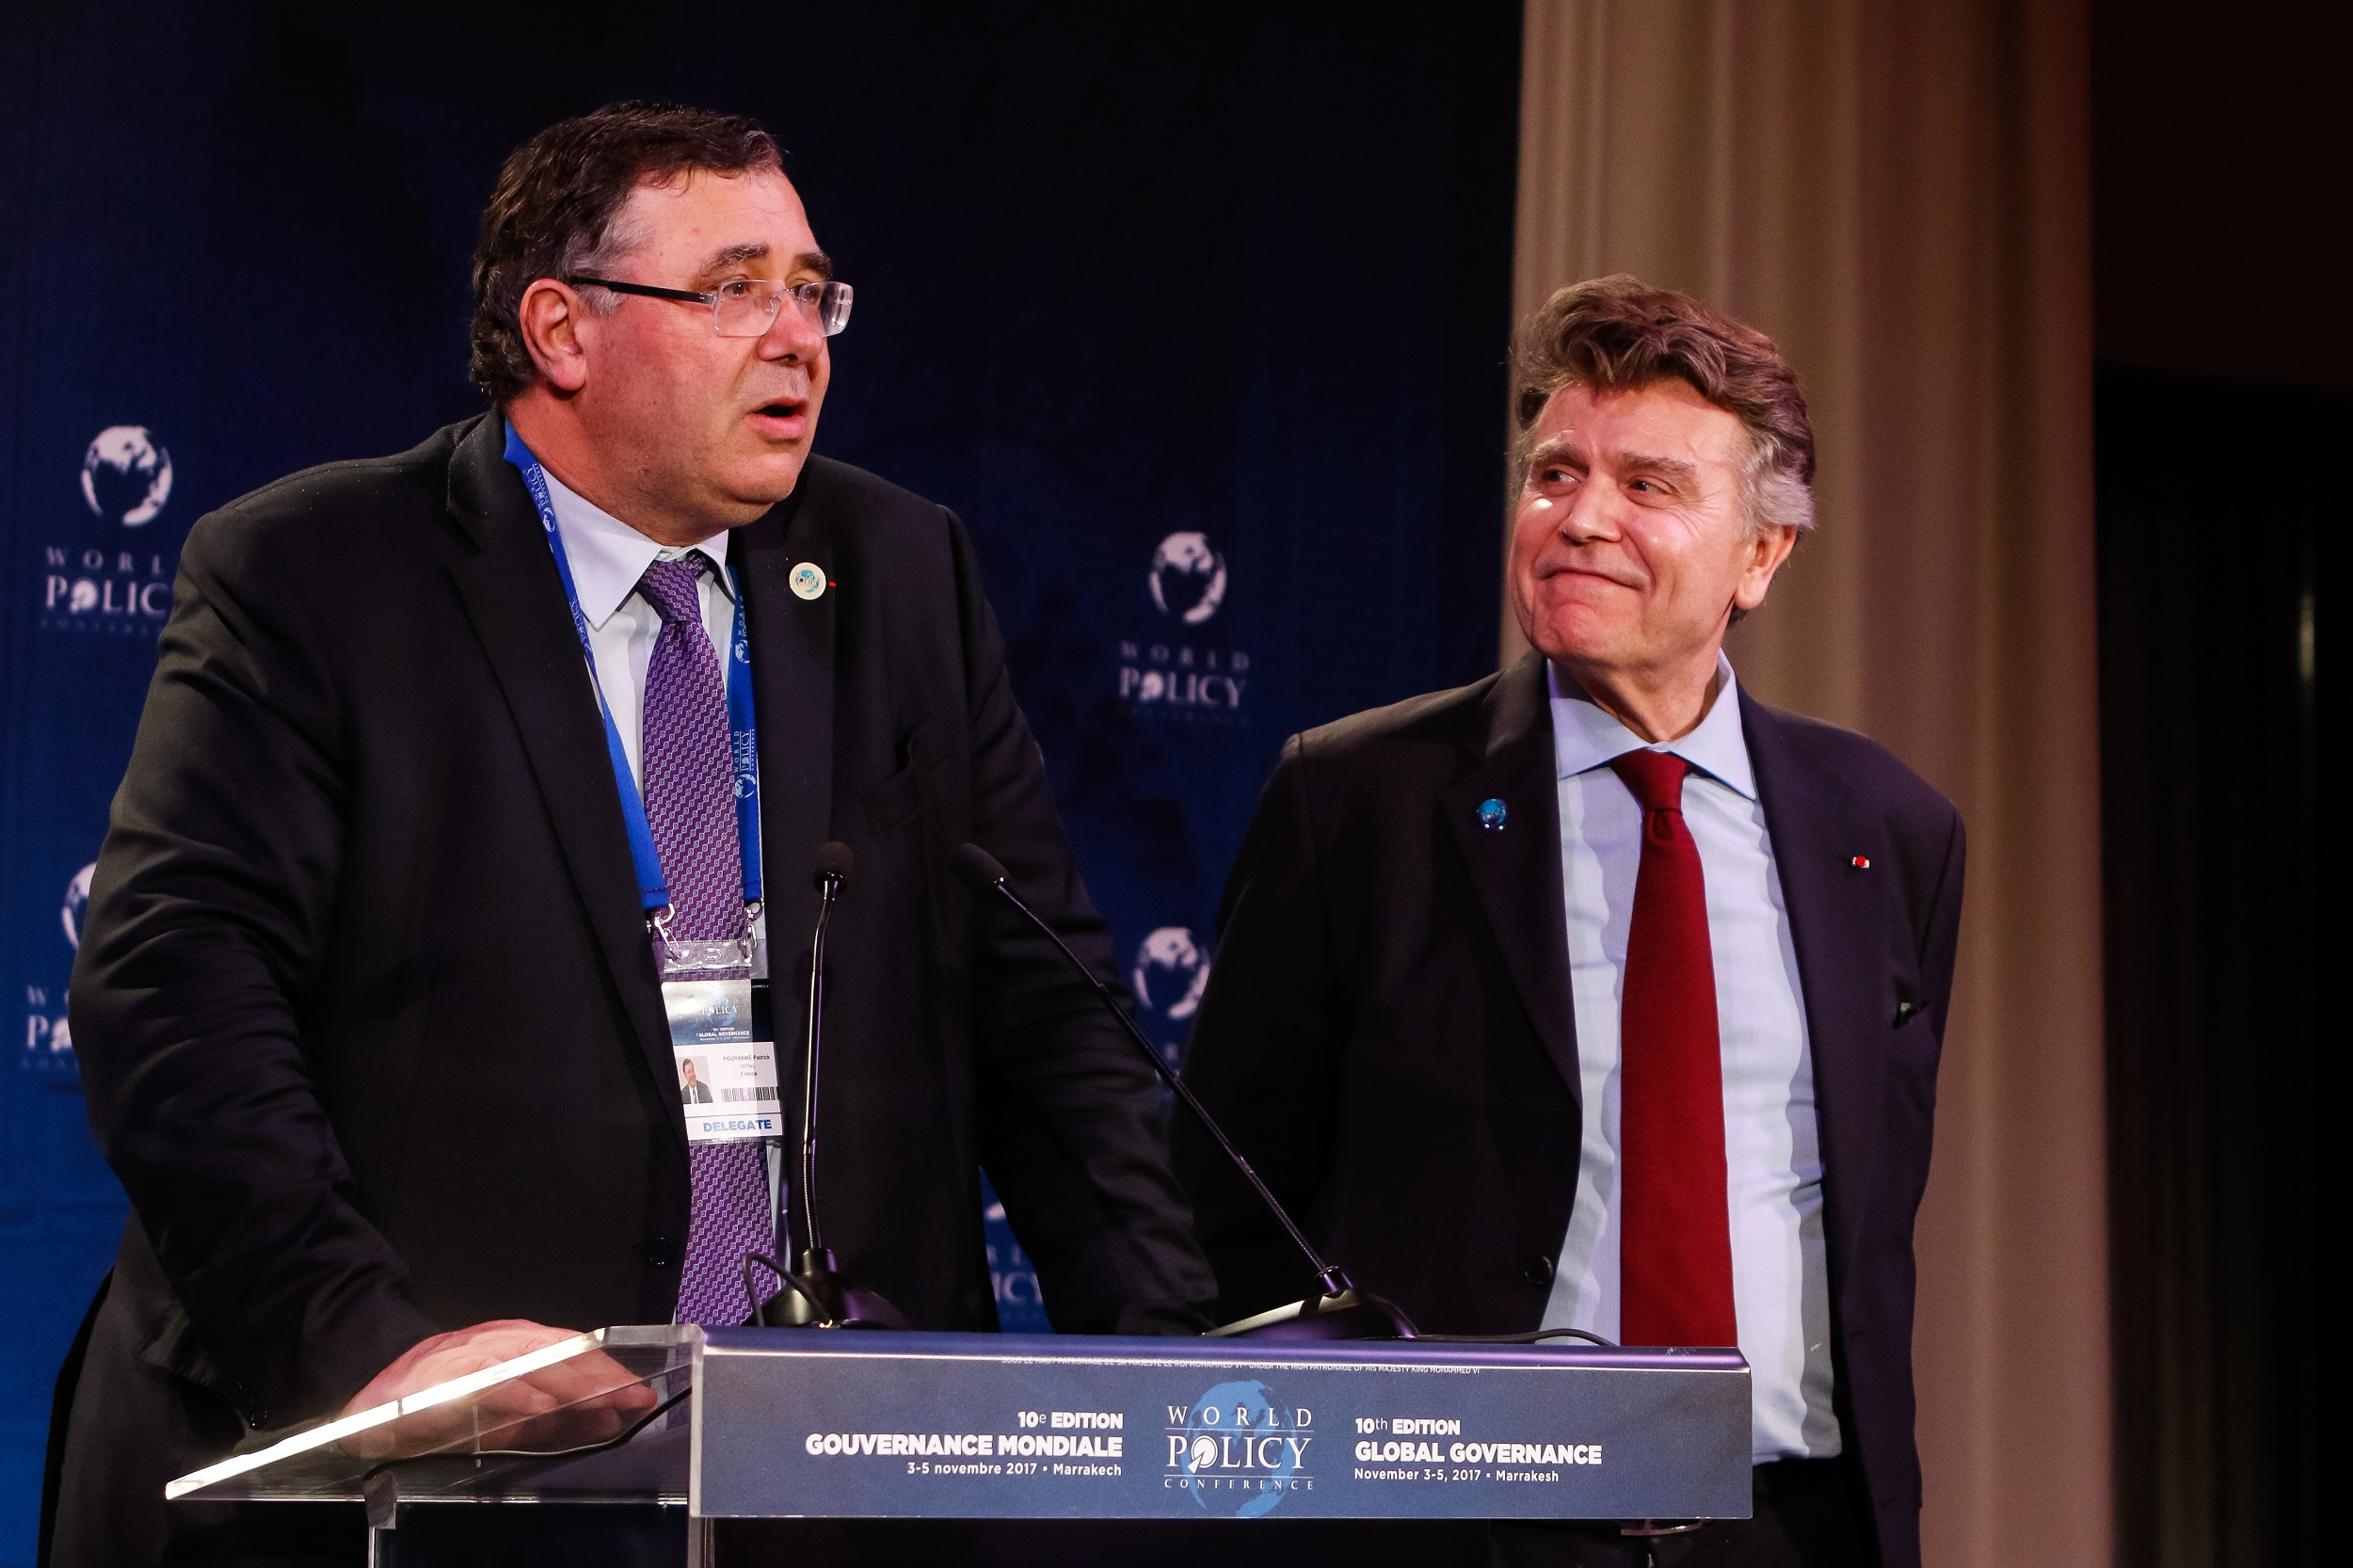 World Policy Conference WPC 2017 Thierry de Montbrial, Patrick Pouyanné